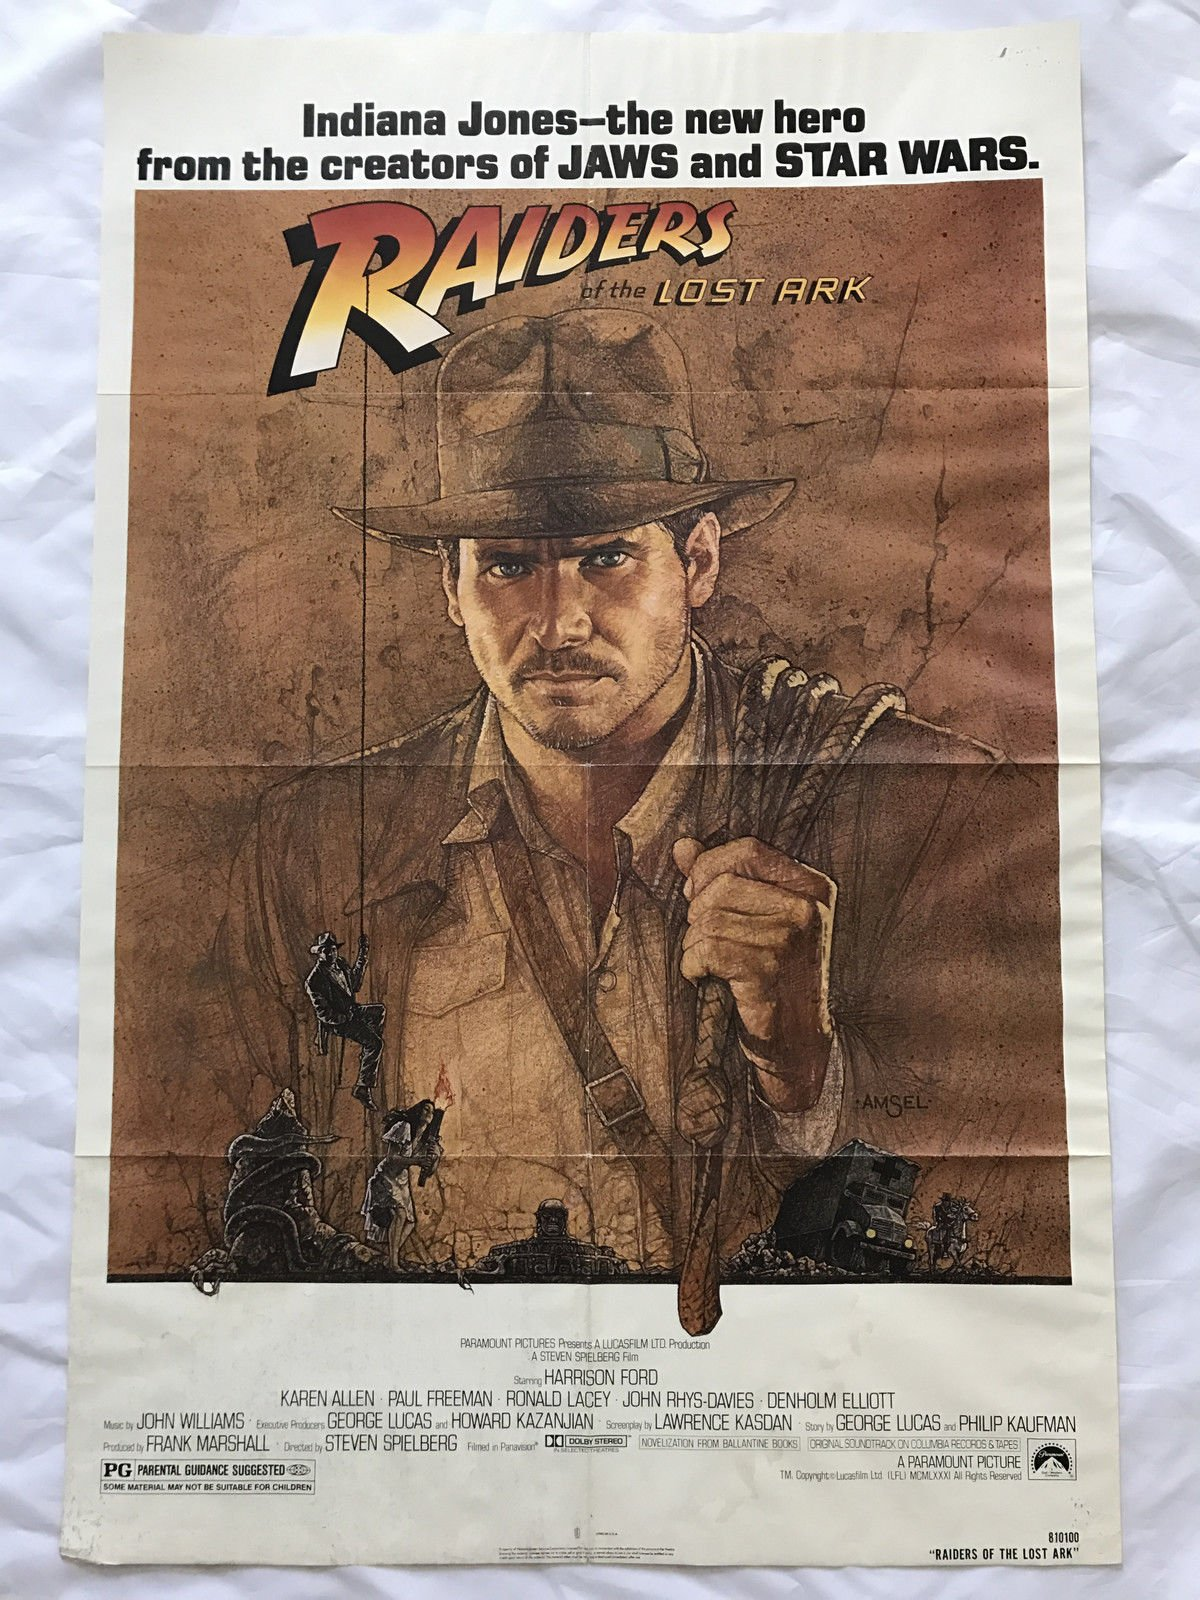 ''INDIANA JONES'' 1981 ORIGINAL MOVIE POSTER FIRST ISSUE 27X41 HARRISON FORD